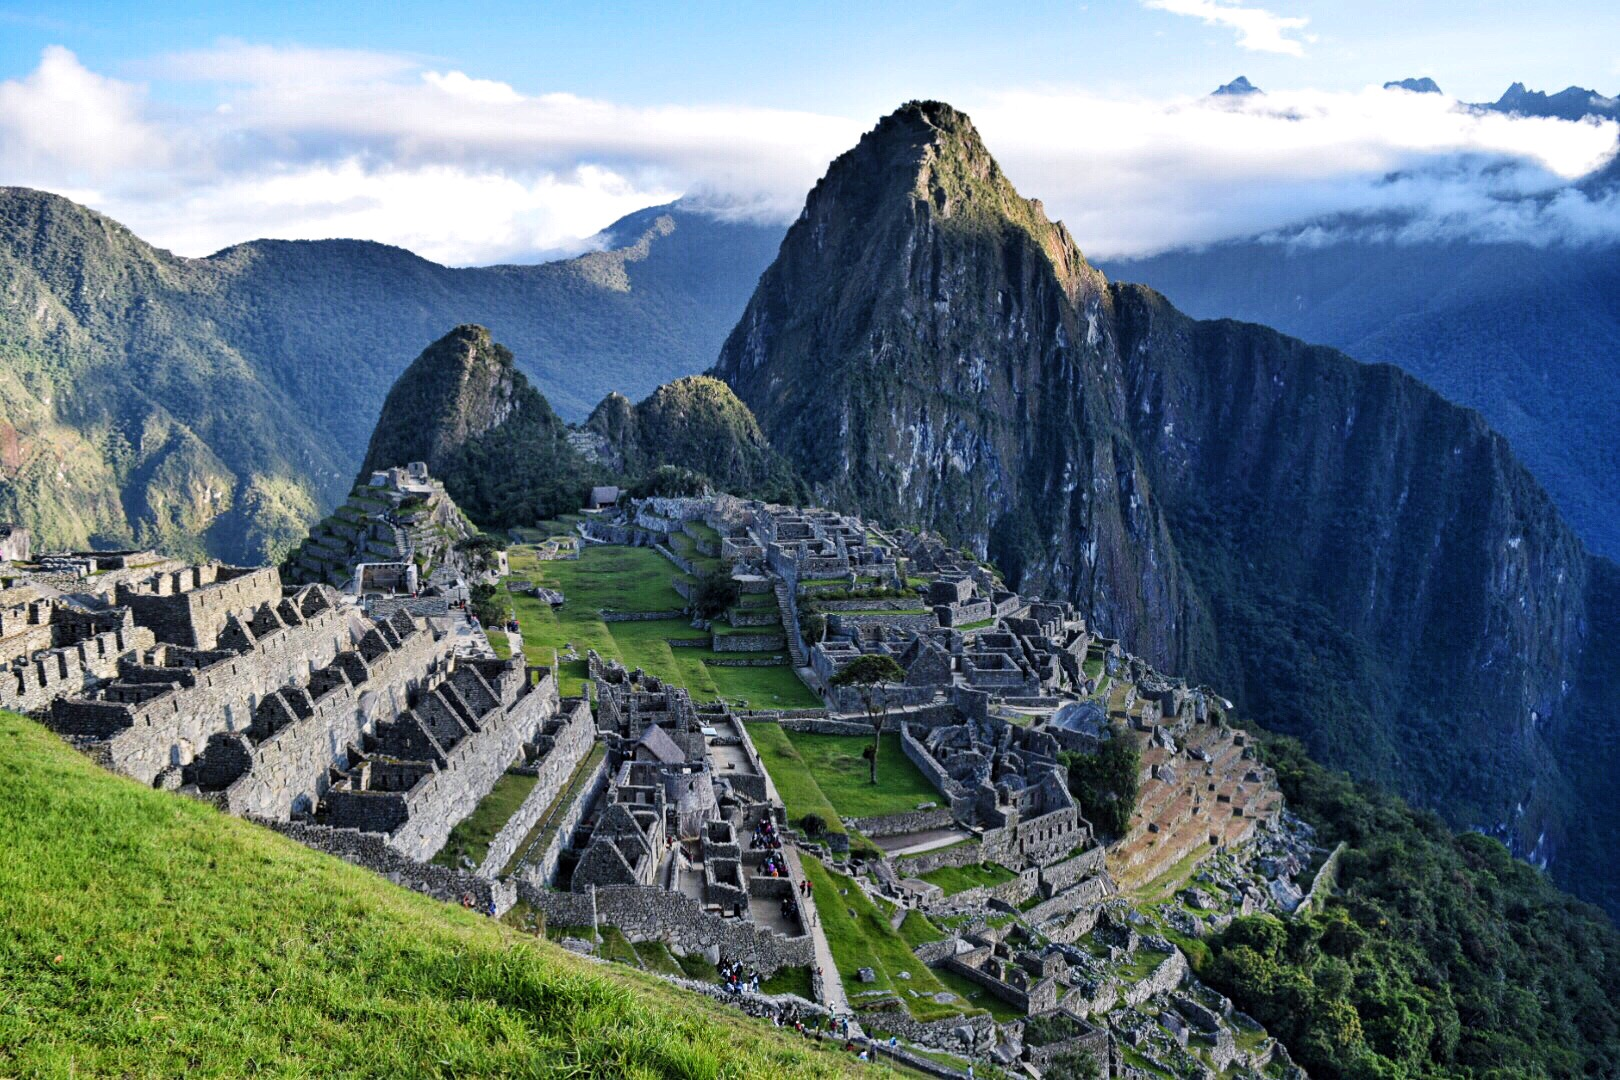 Looking to plan a trip with a bit of adventure? Here are the best adventure holidays in South America and some activities to do at each destination.